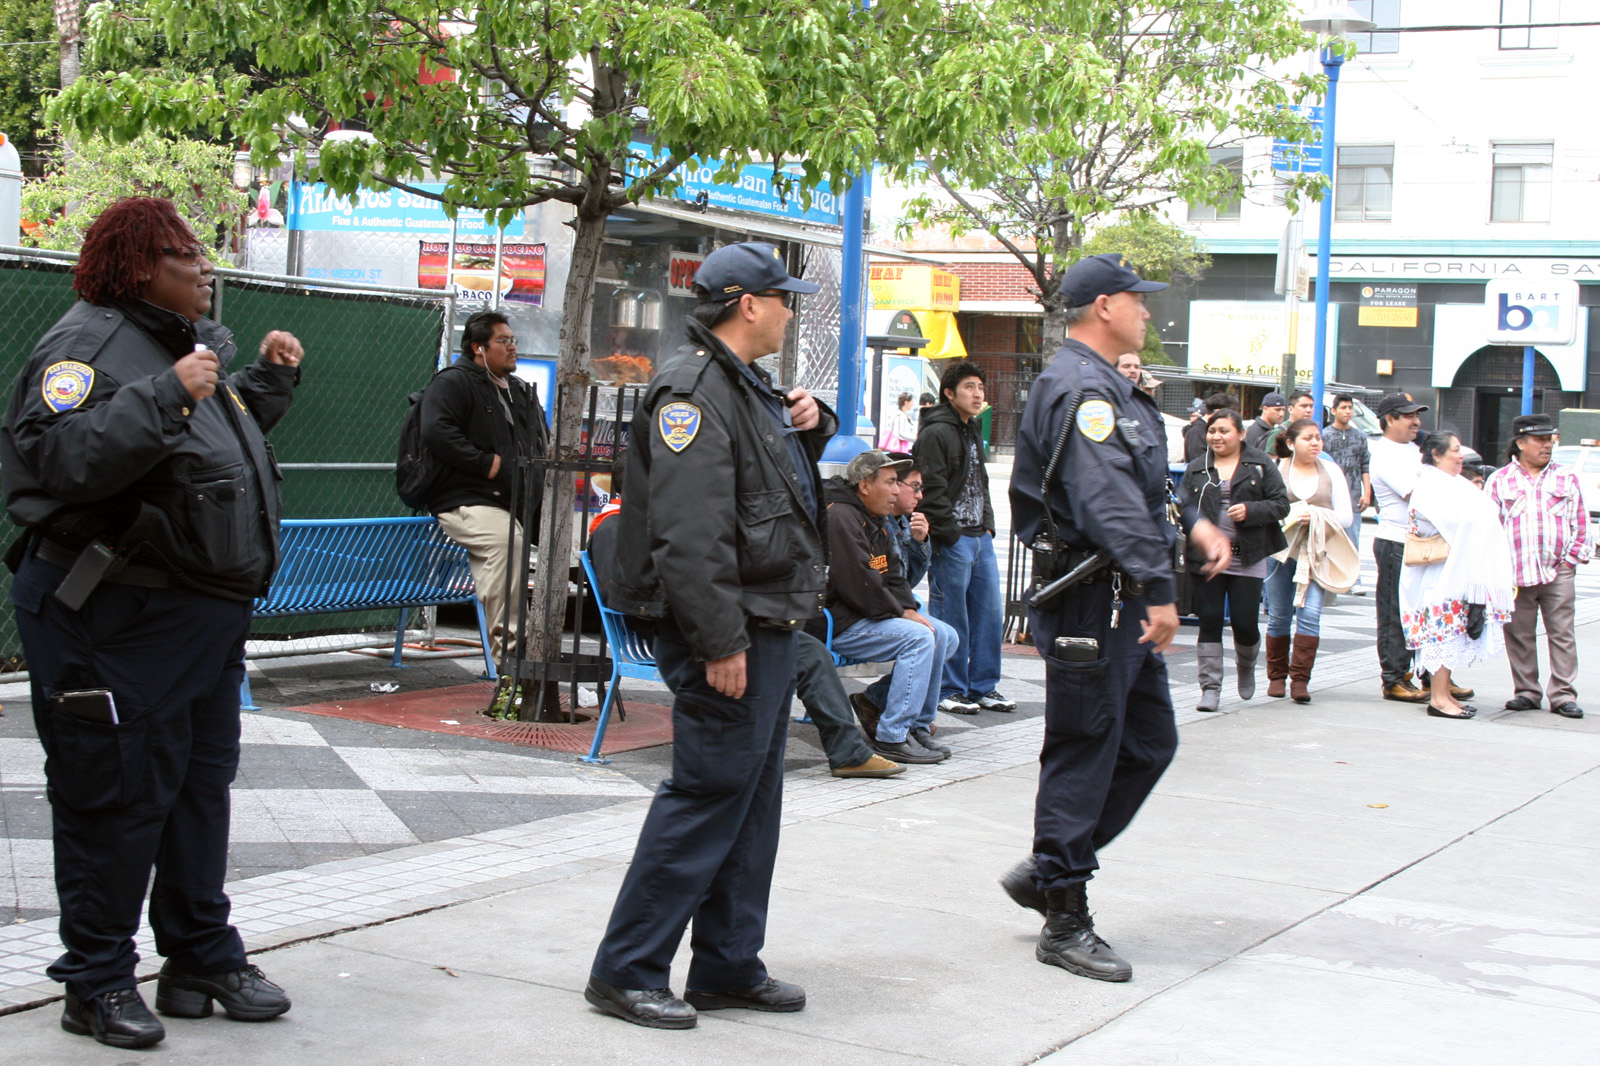 Fare Inspectors, Cops Sweep 16th Street BART